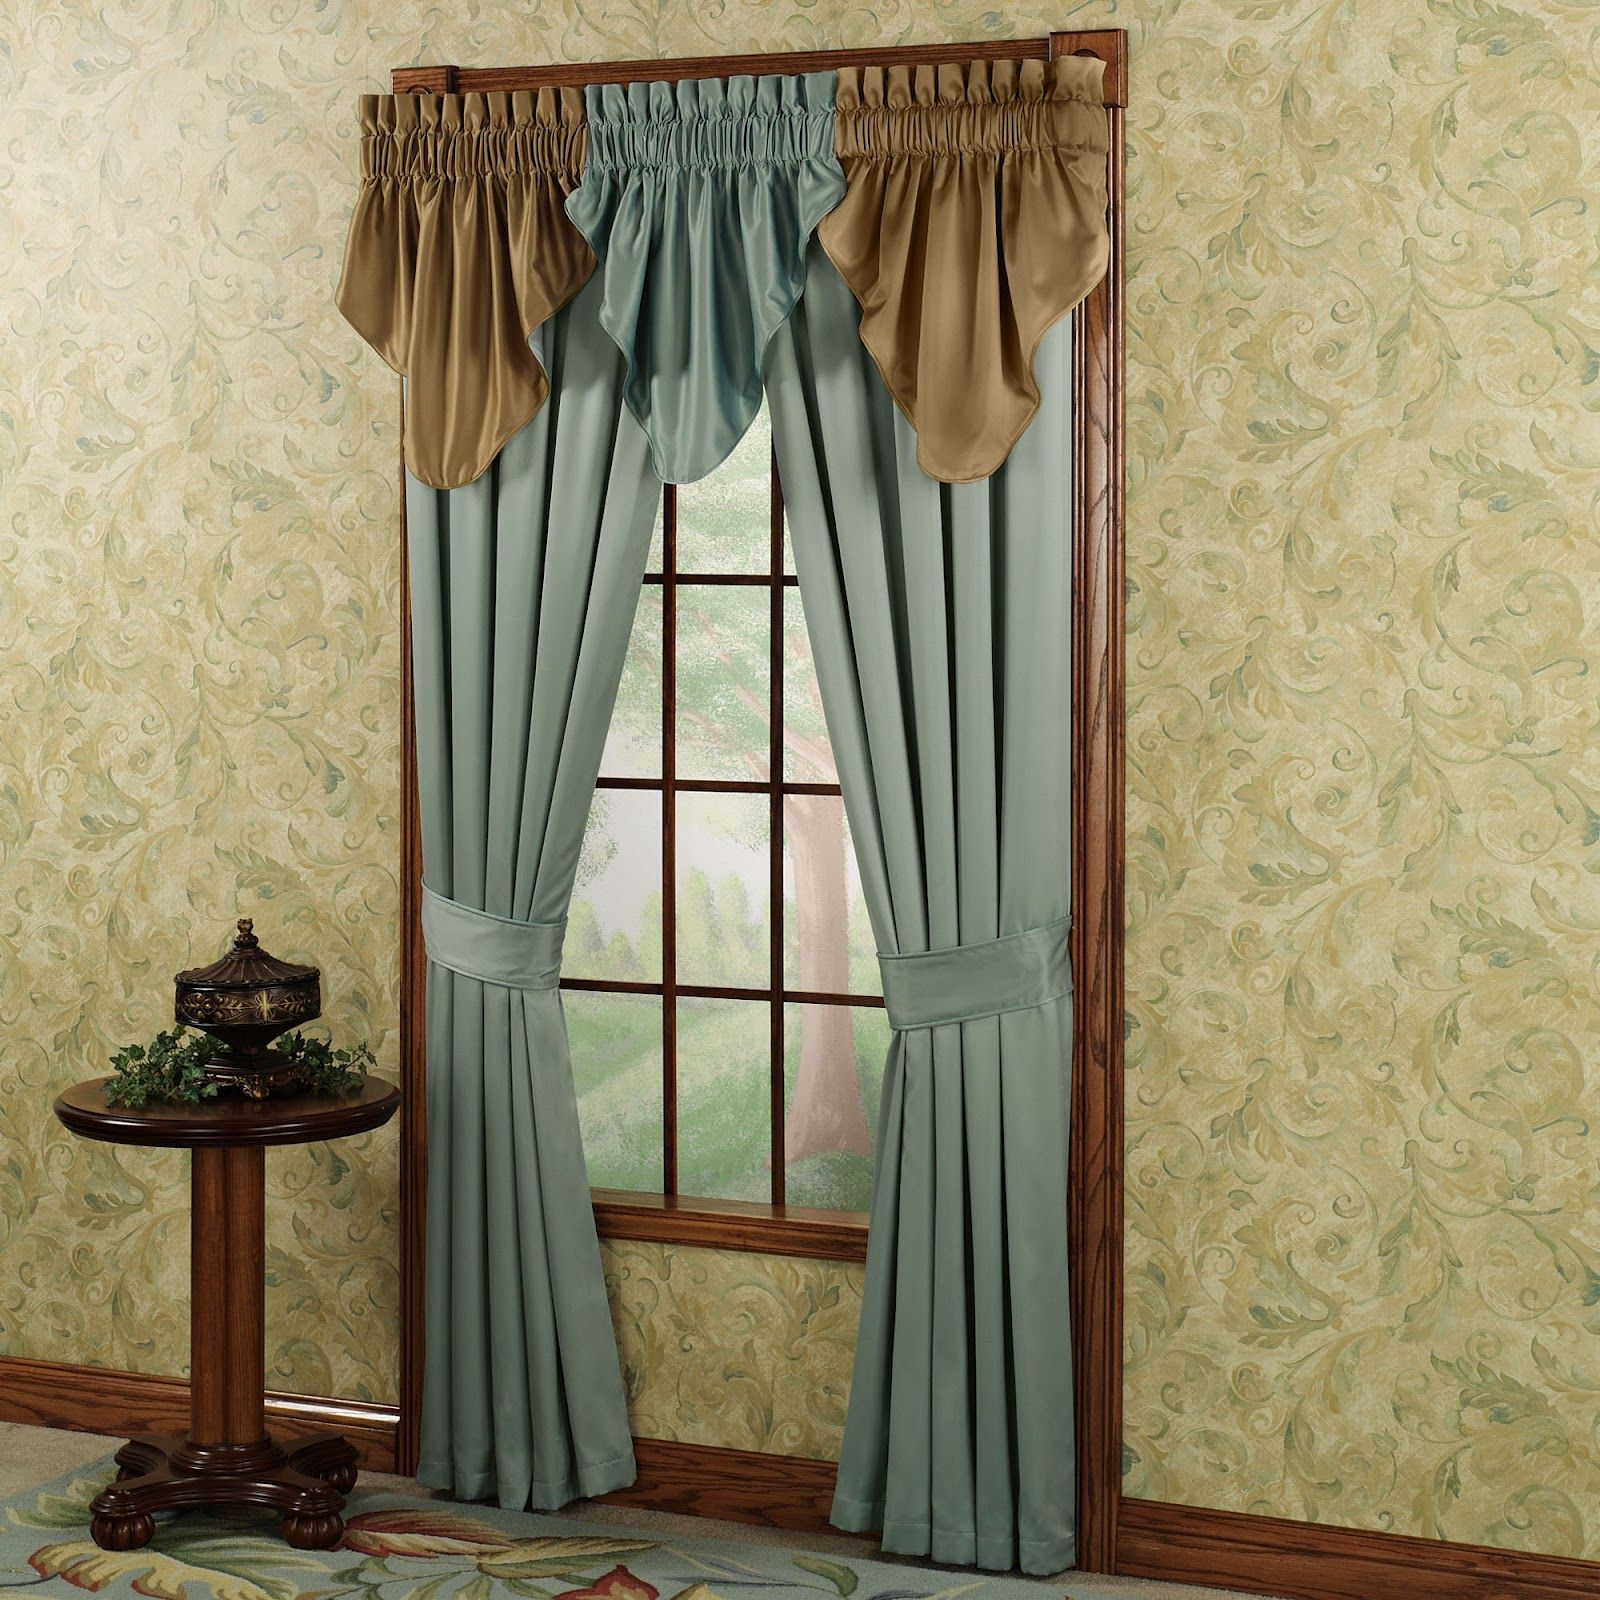 Curtain Design Ideas curtains and drapes design ideas of good window curtain designs window and design on great New Home Designs Latest Home Curtain Designs Ideas